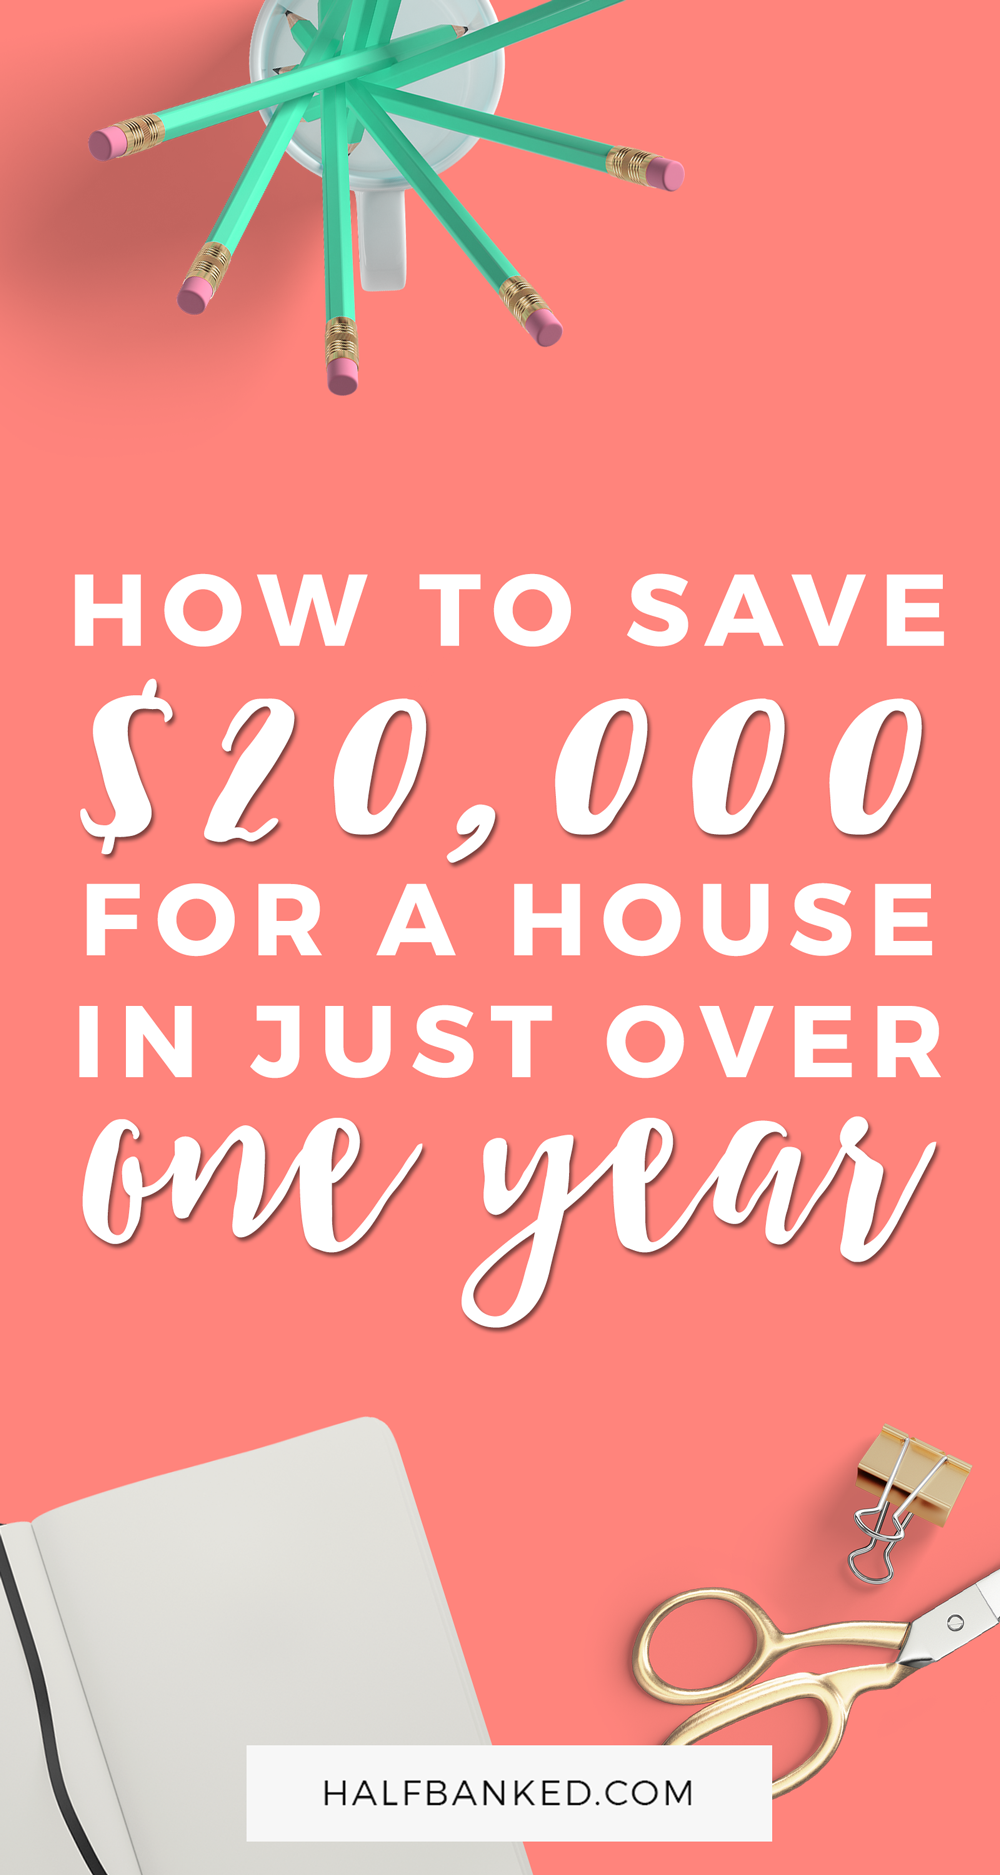 How to save for a house house plan 2017 for Quickest way to save for a house